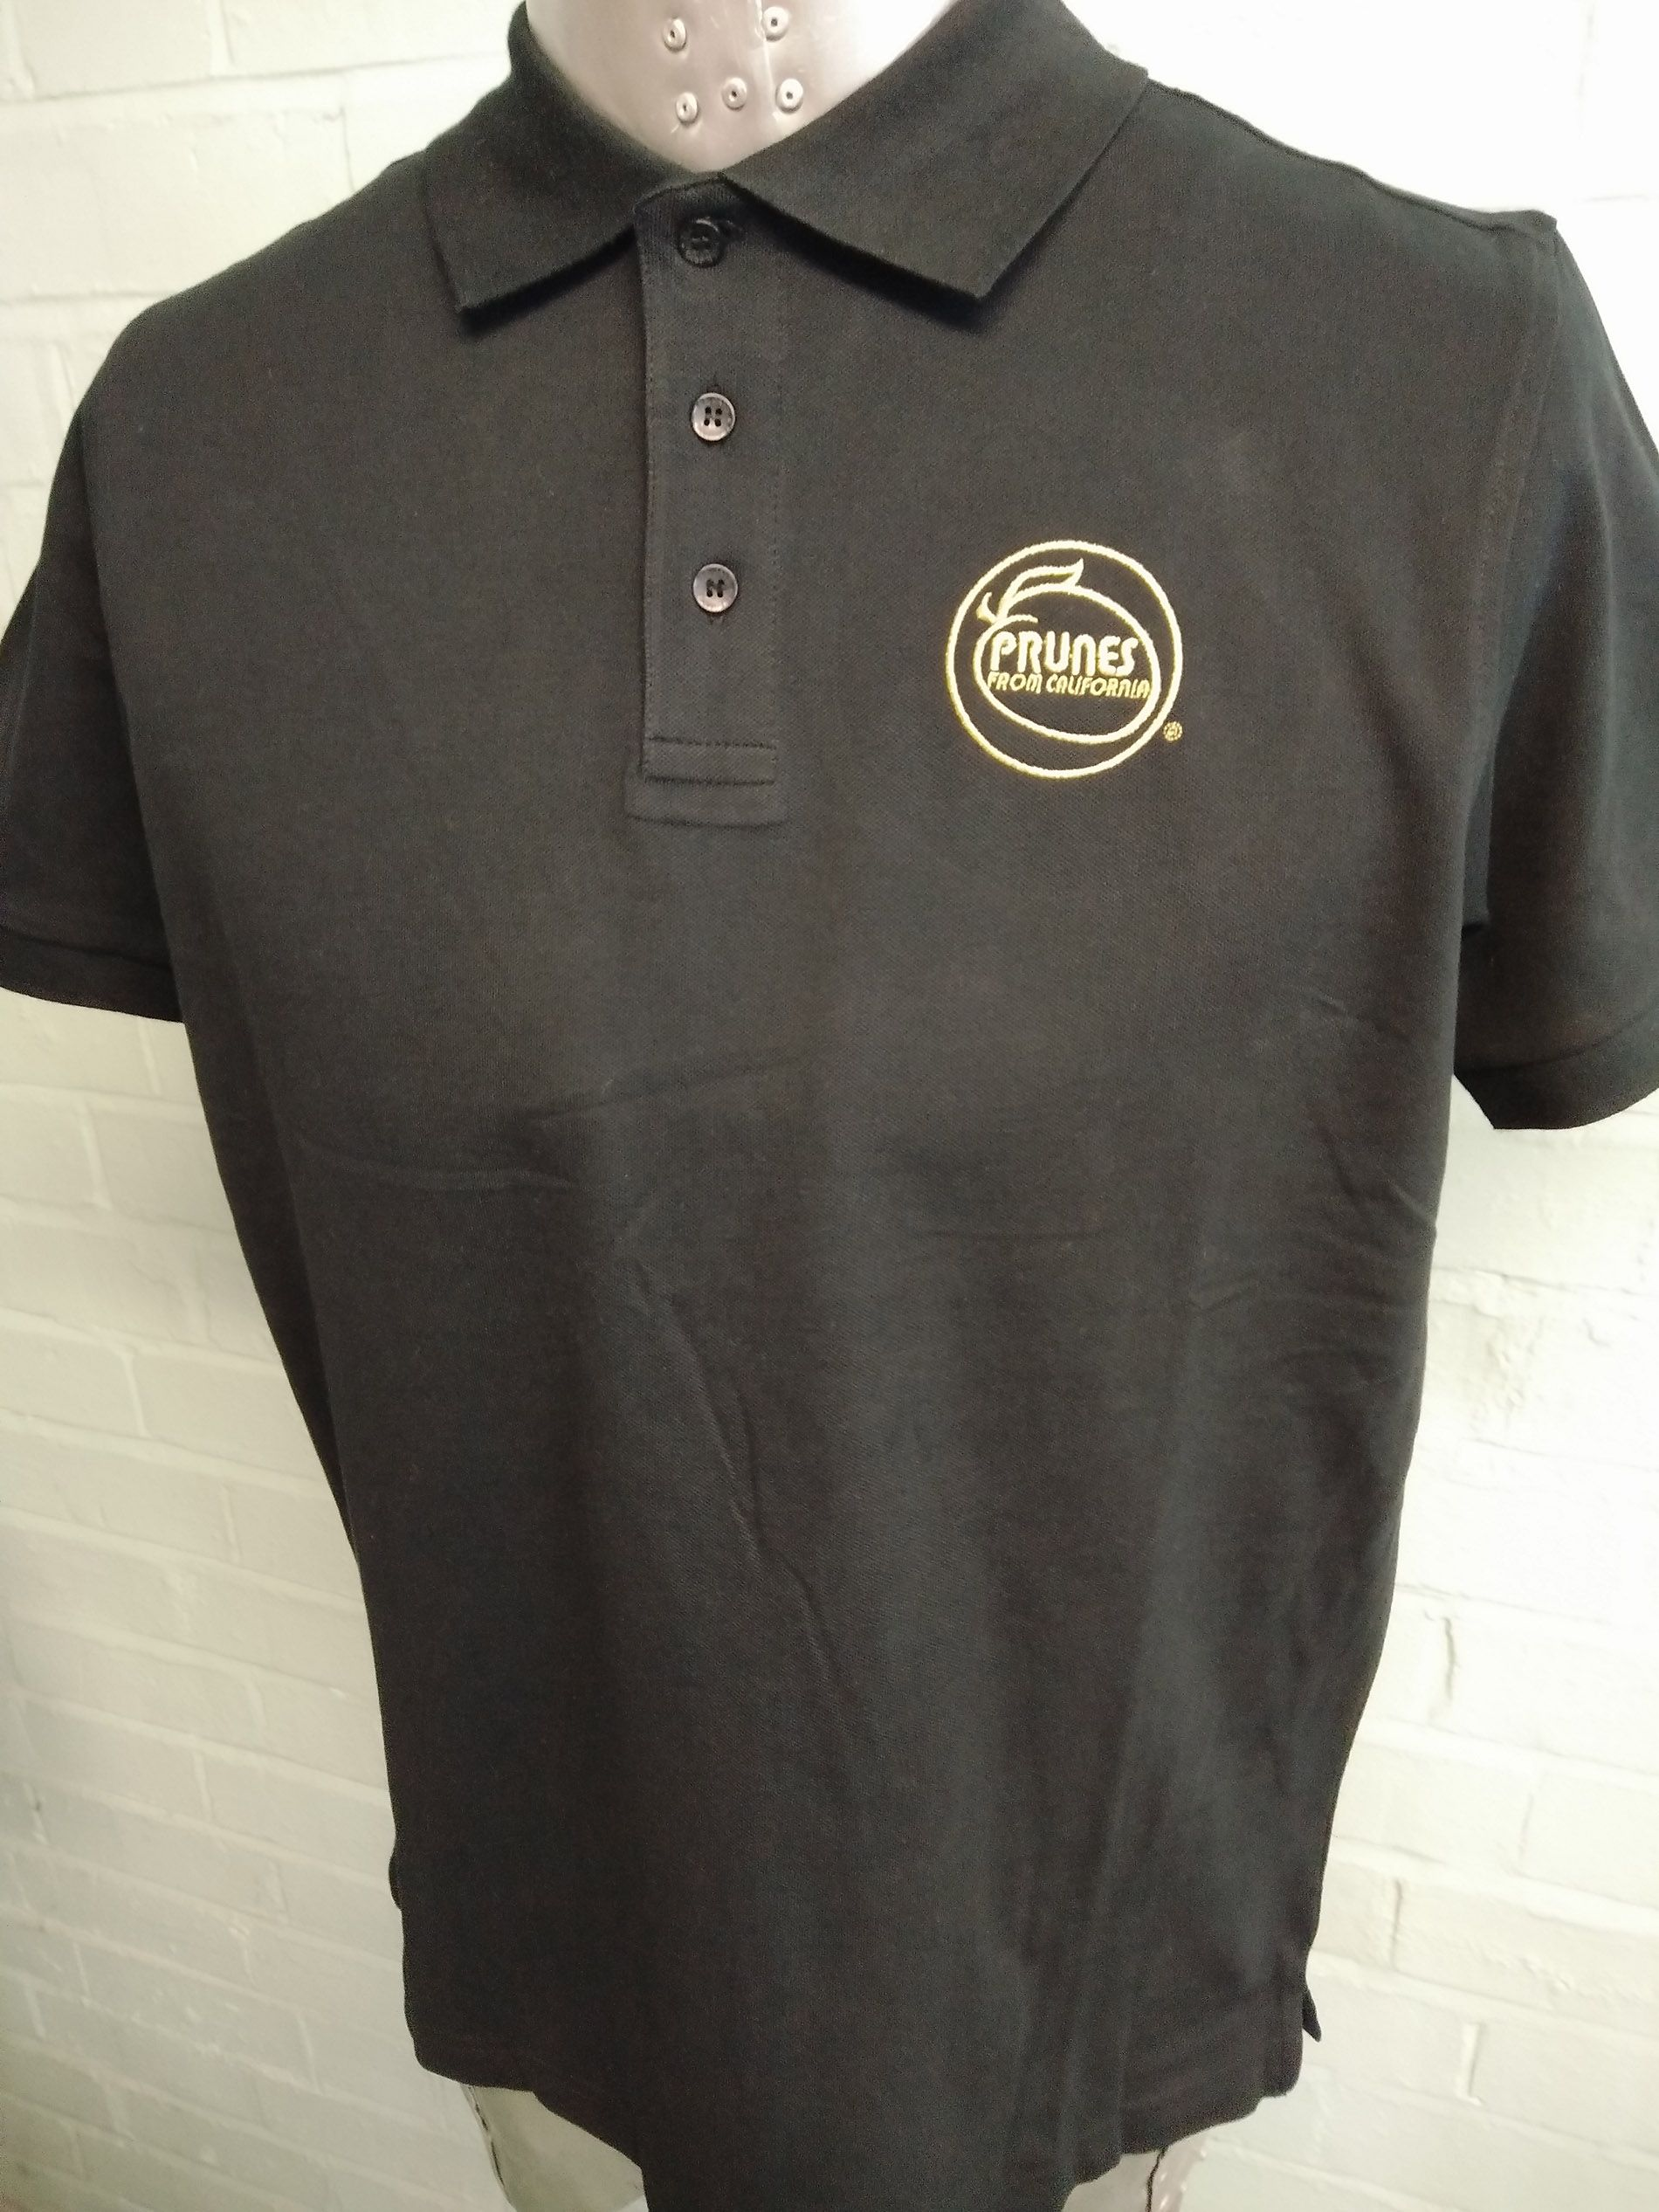 Black polo shirt event t shirts for prunes from california for Personalised embroidered polo shirts